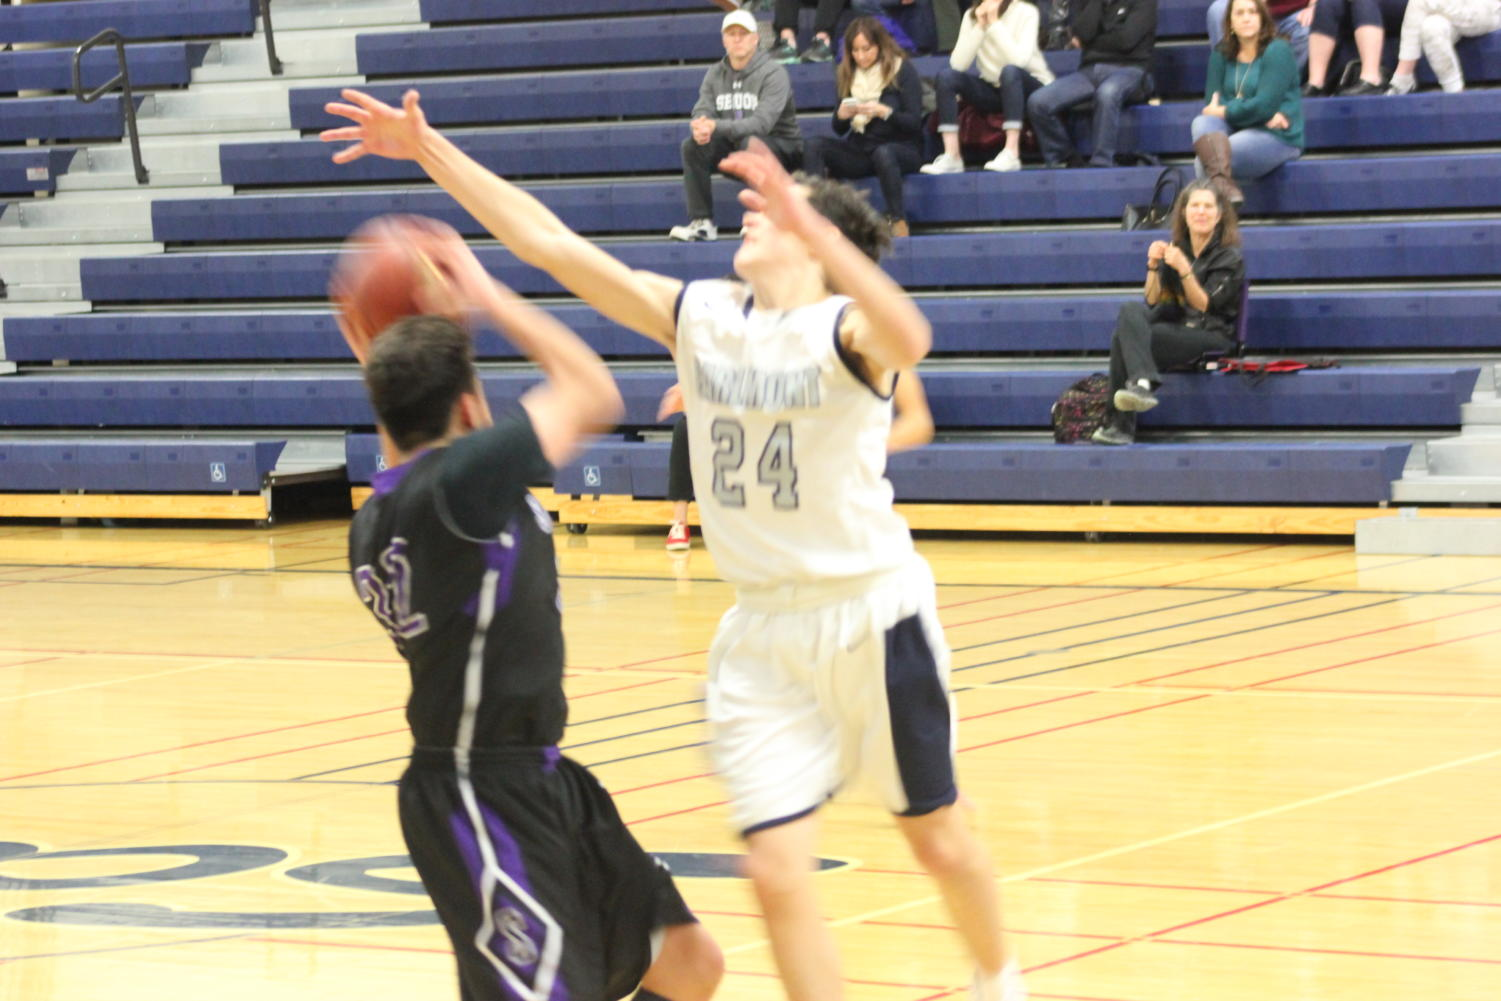 Sophmore Miles Ozorio blocks a shot from a Sequia player.